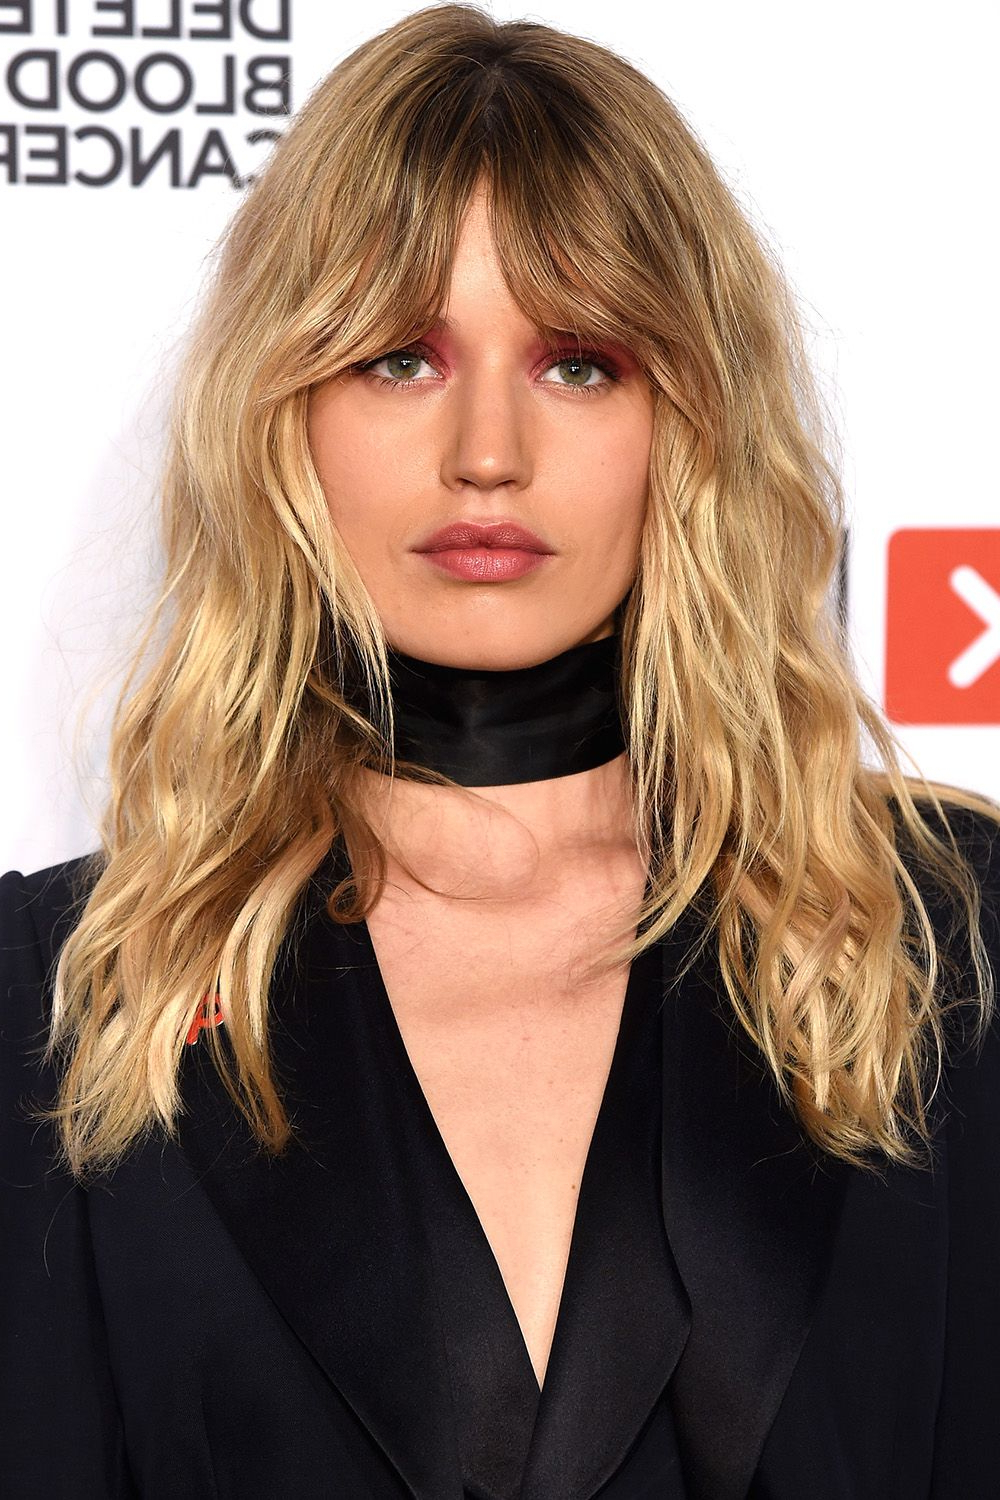 40 Best Medium Hairstyles – Celebrities With Shoulder Length Haircuts Pertaining To Most Current Medium Haircuts For Tall Women (Gallery 11 of 20)